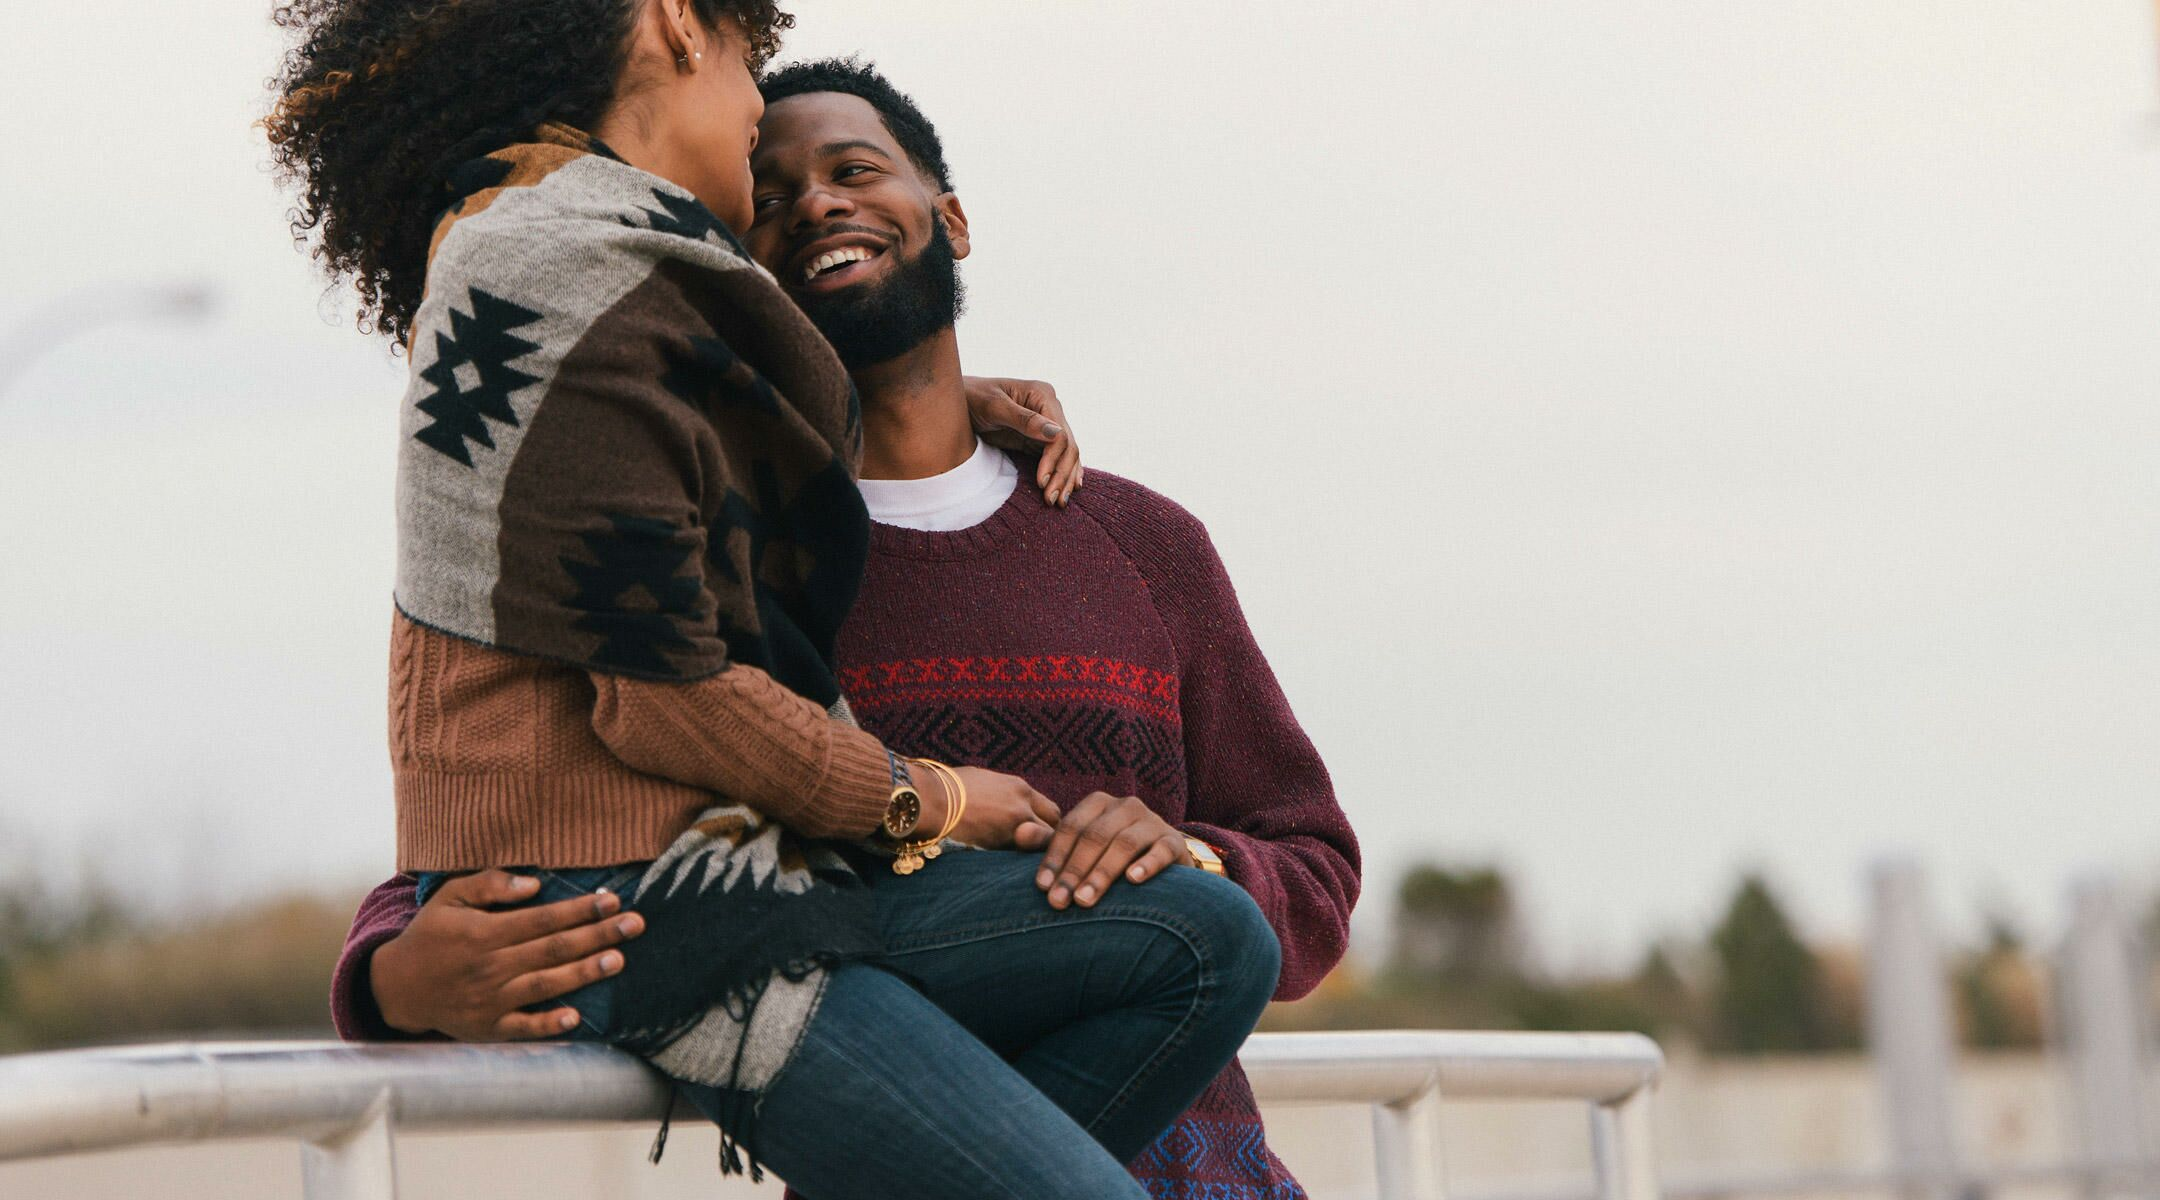 Top 4 sex position myths african american couple embracing outside voltagebd Choice Image